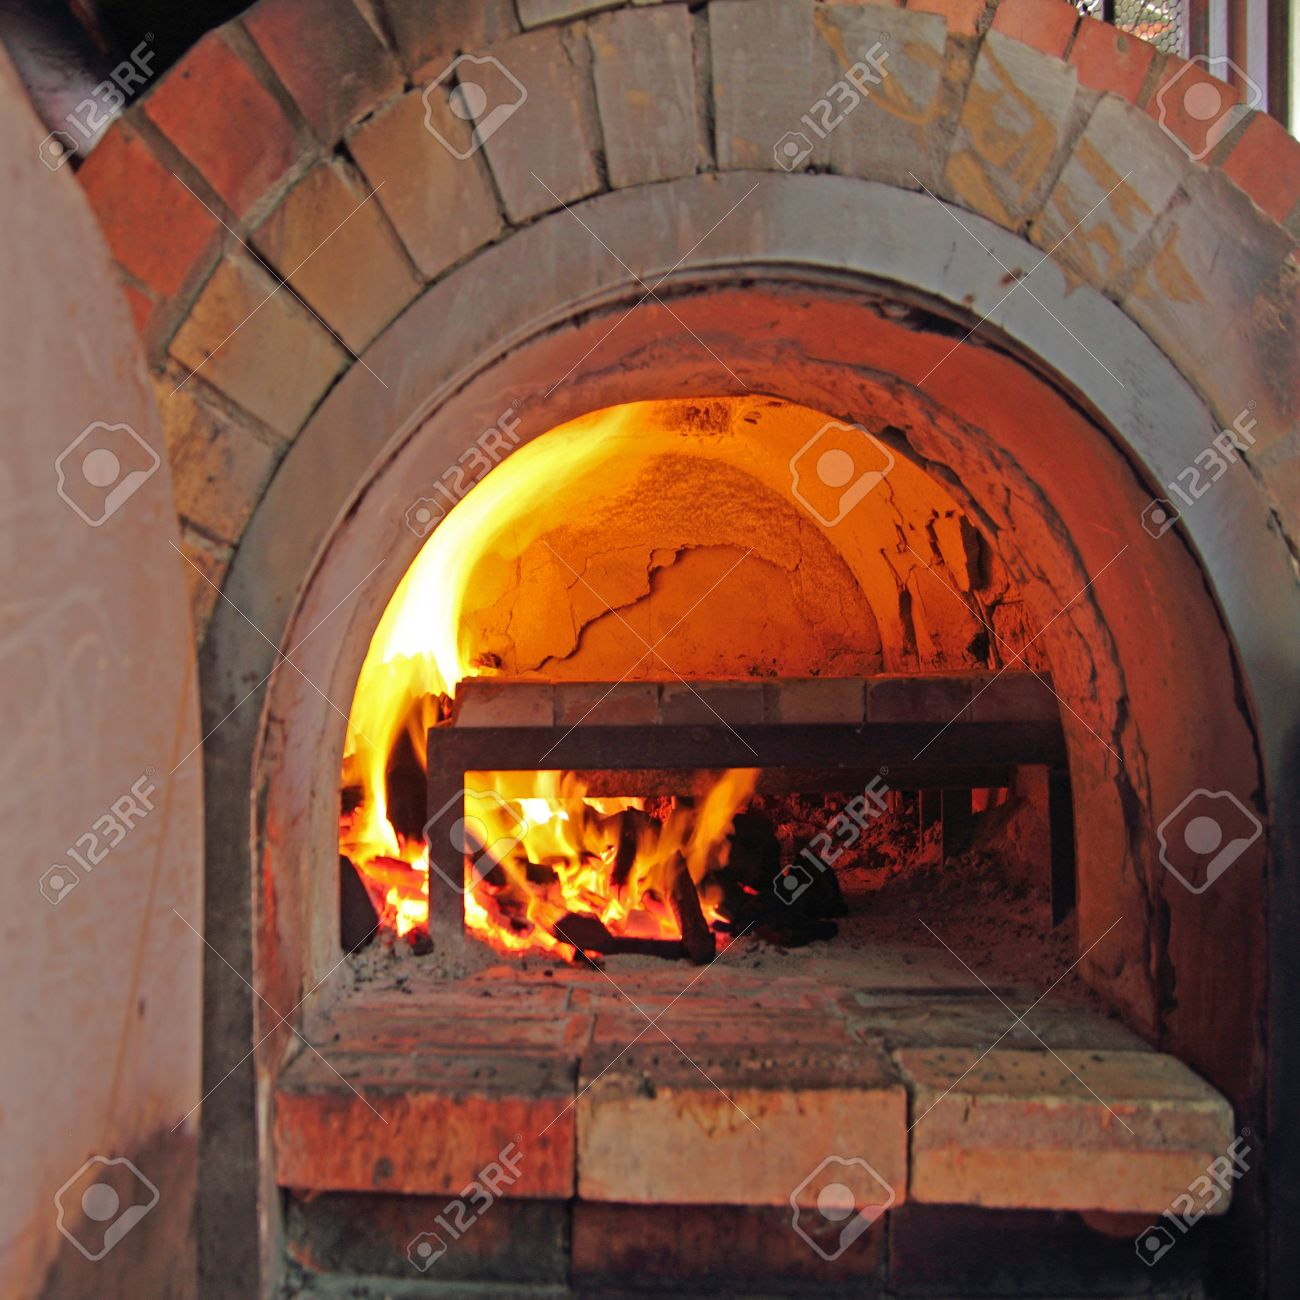 brick oven for cooking and baking food Stock Photo - 15641237